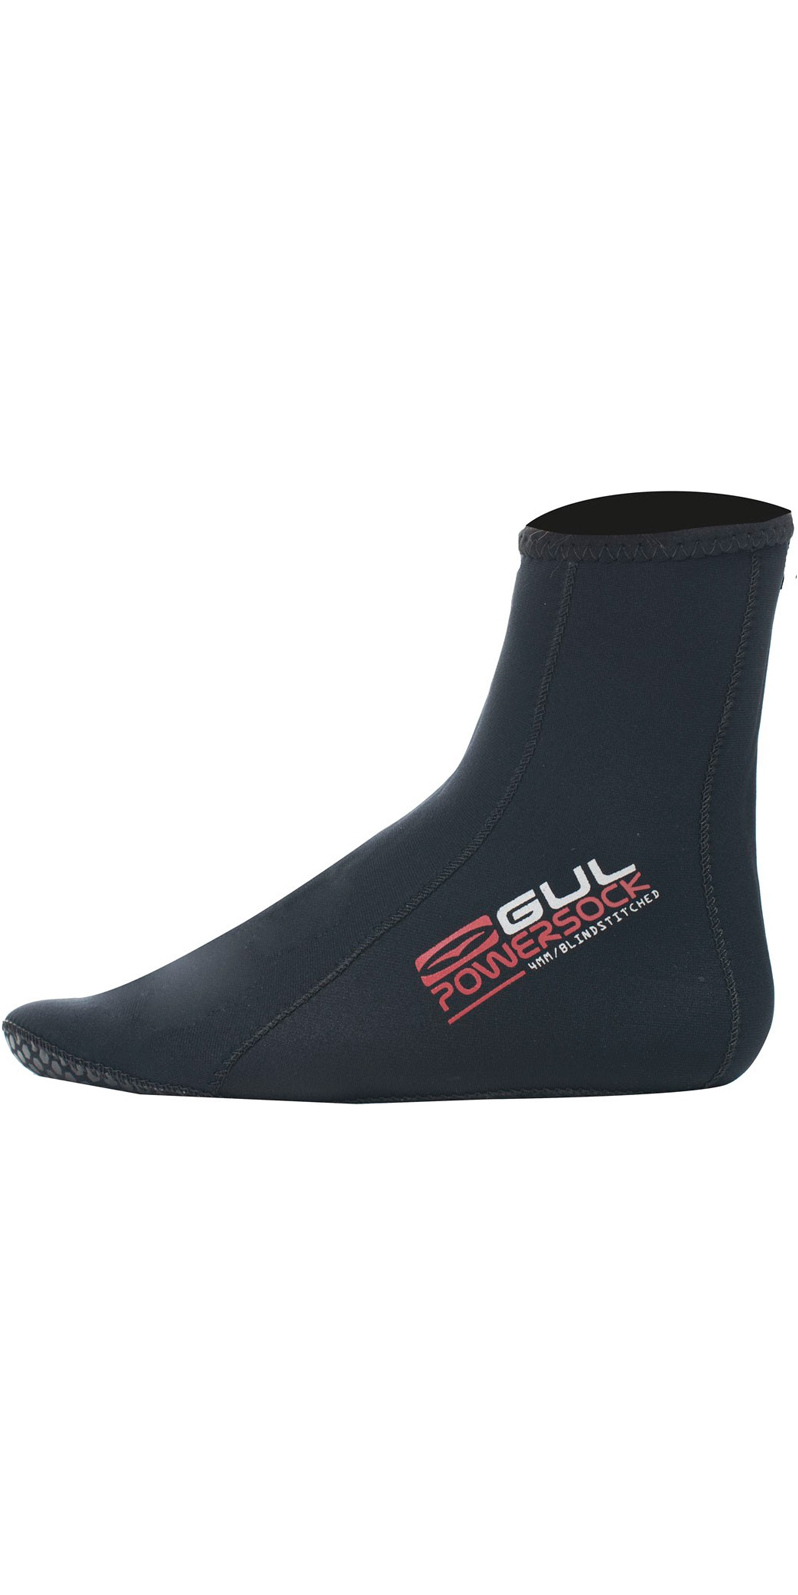 da2a2769f8f1 2019 Gul Power Sock 4mm Neoprene Wesuit Sock Bo1270 A3 - Wetsuit ...